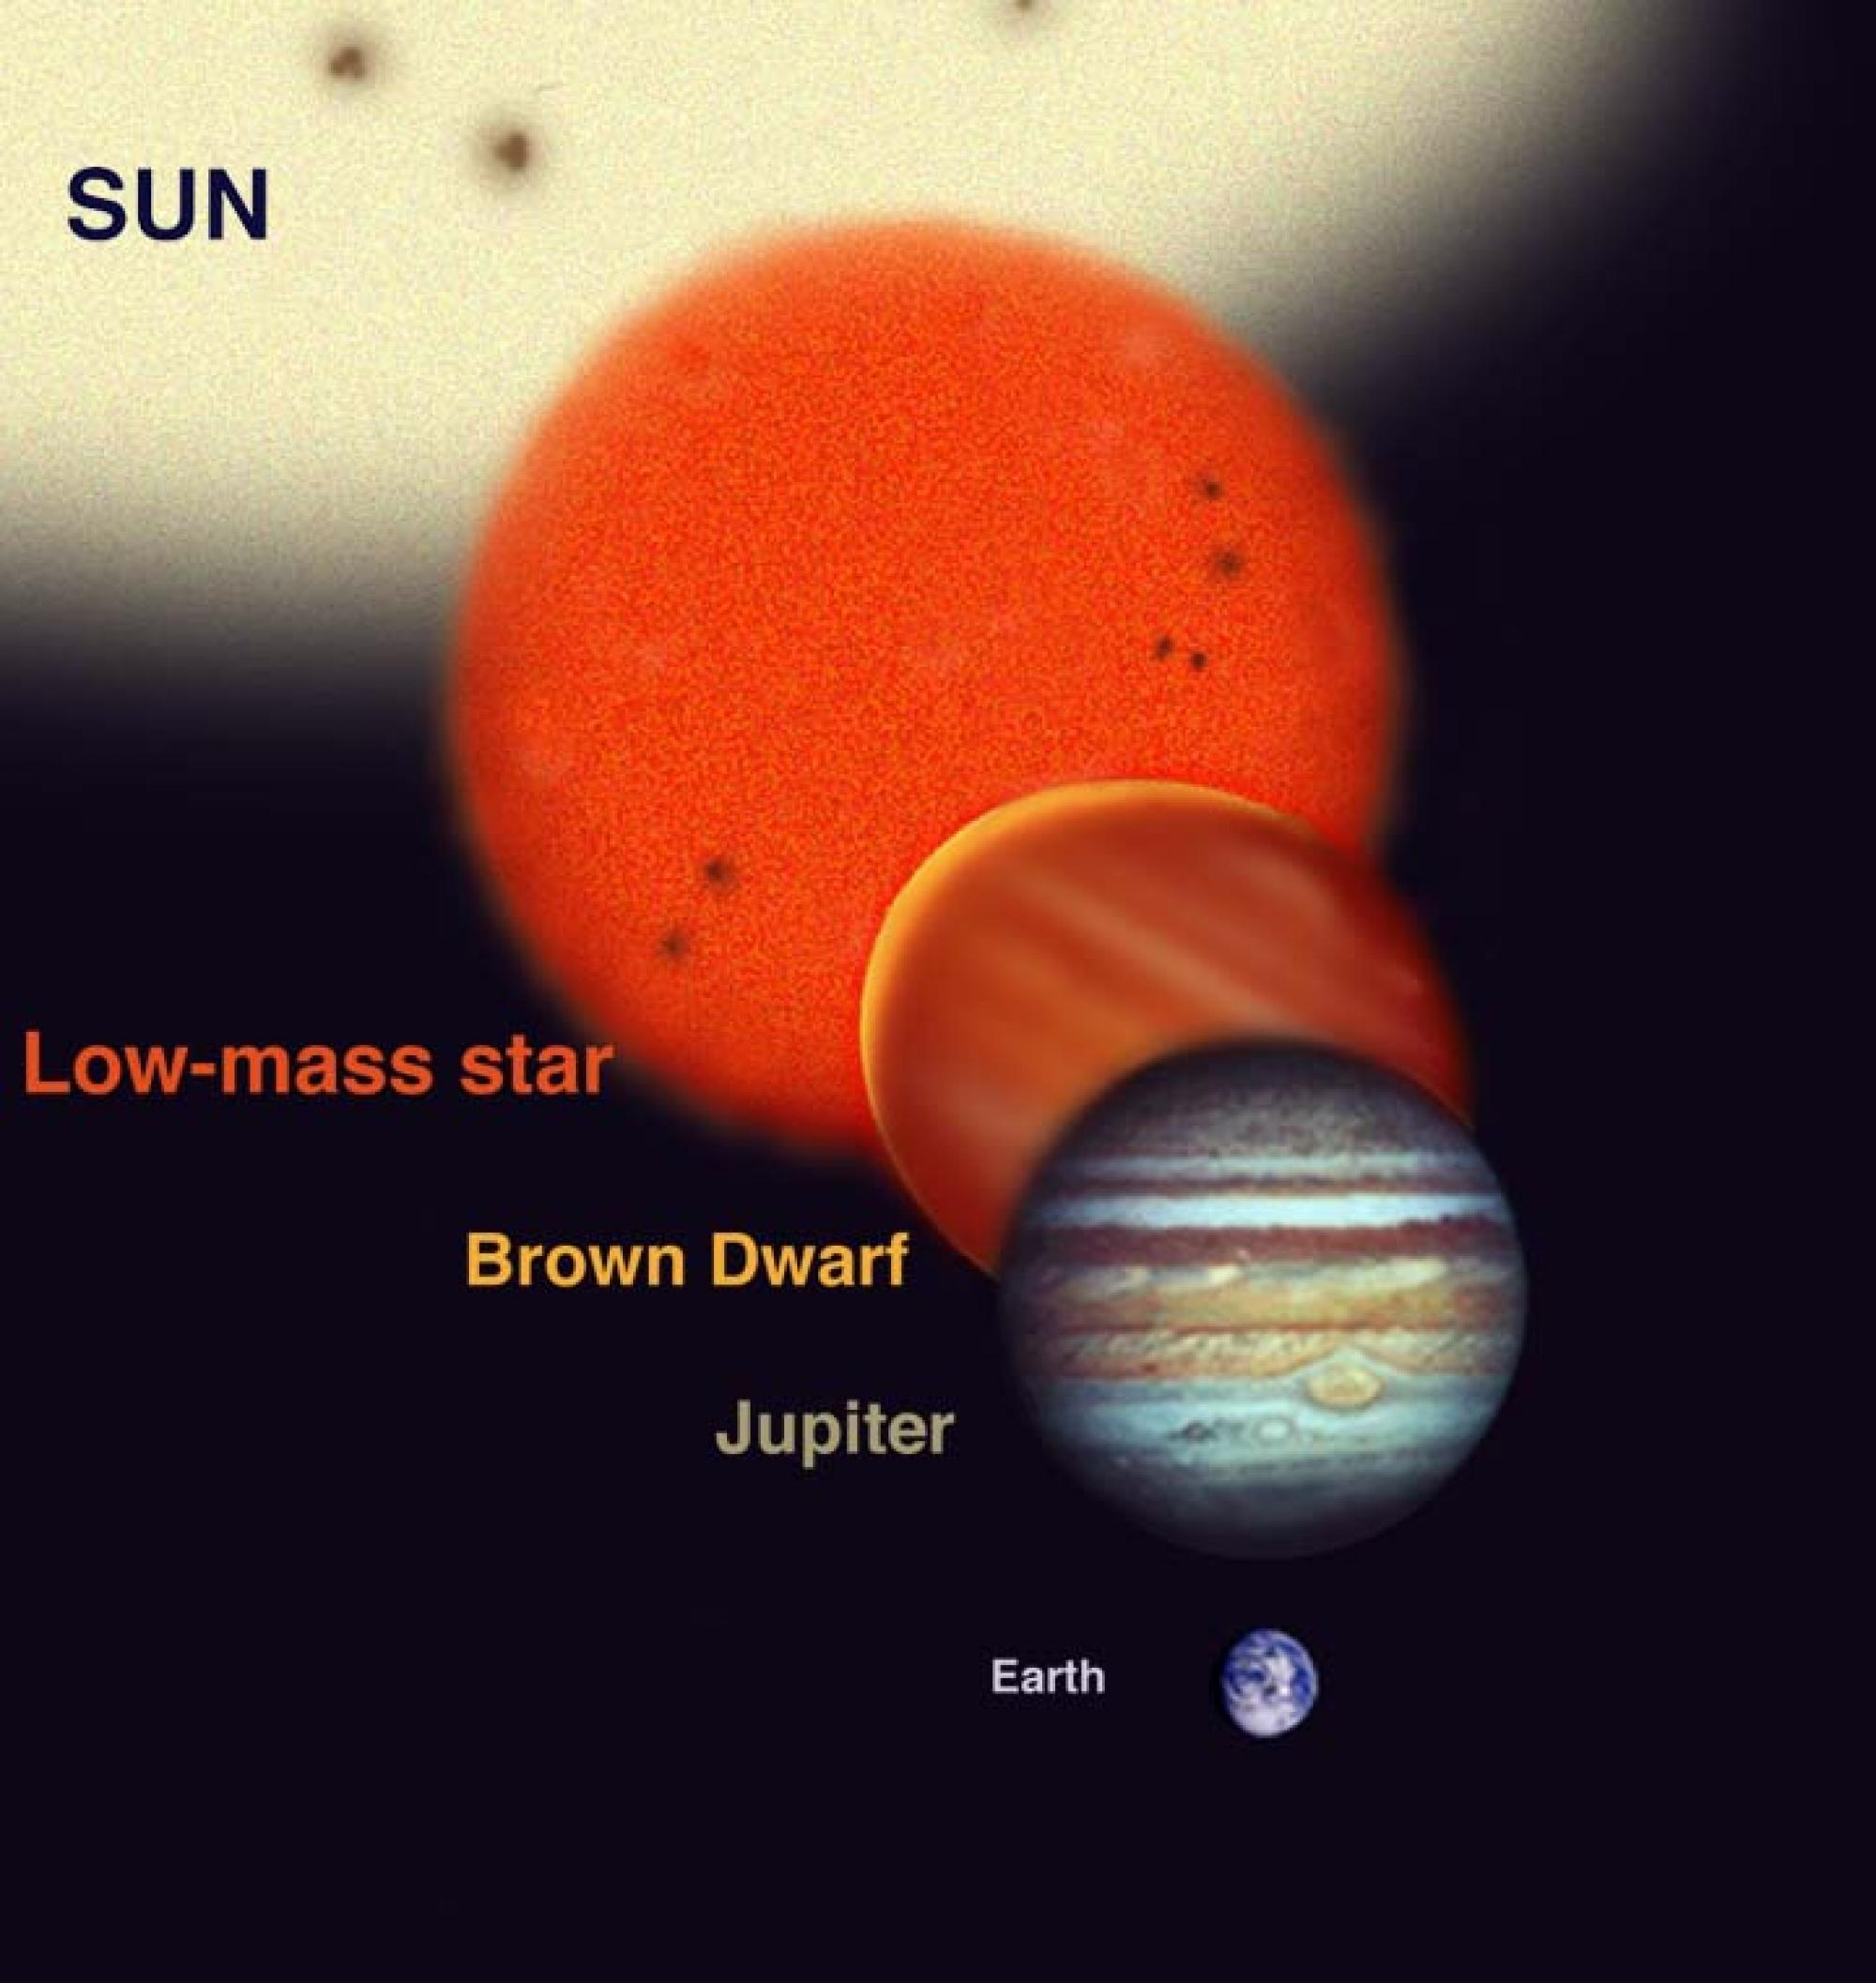 The range of sizes of a brown dwarf compared to Jupiter and the Sun and the Earth . Brown Dwarfs are more massive than planets but less massive than stars. But they have similar diameters to planets such as Jupiter.